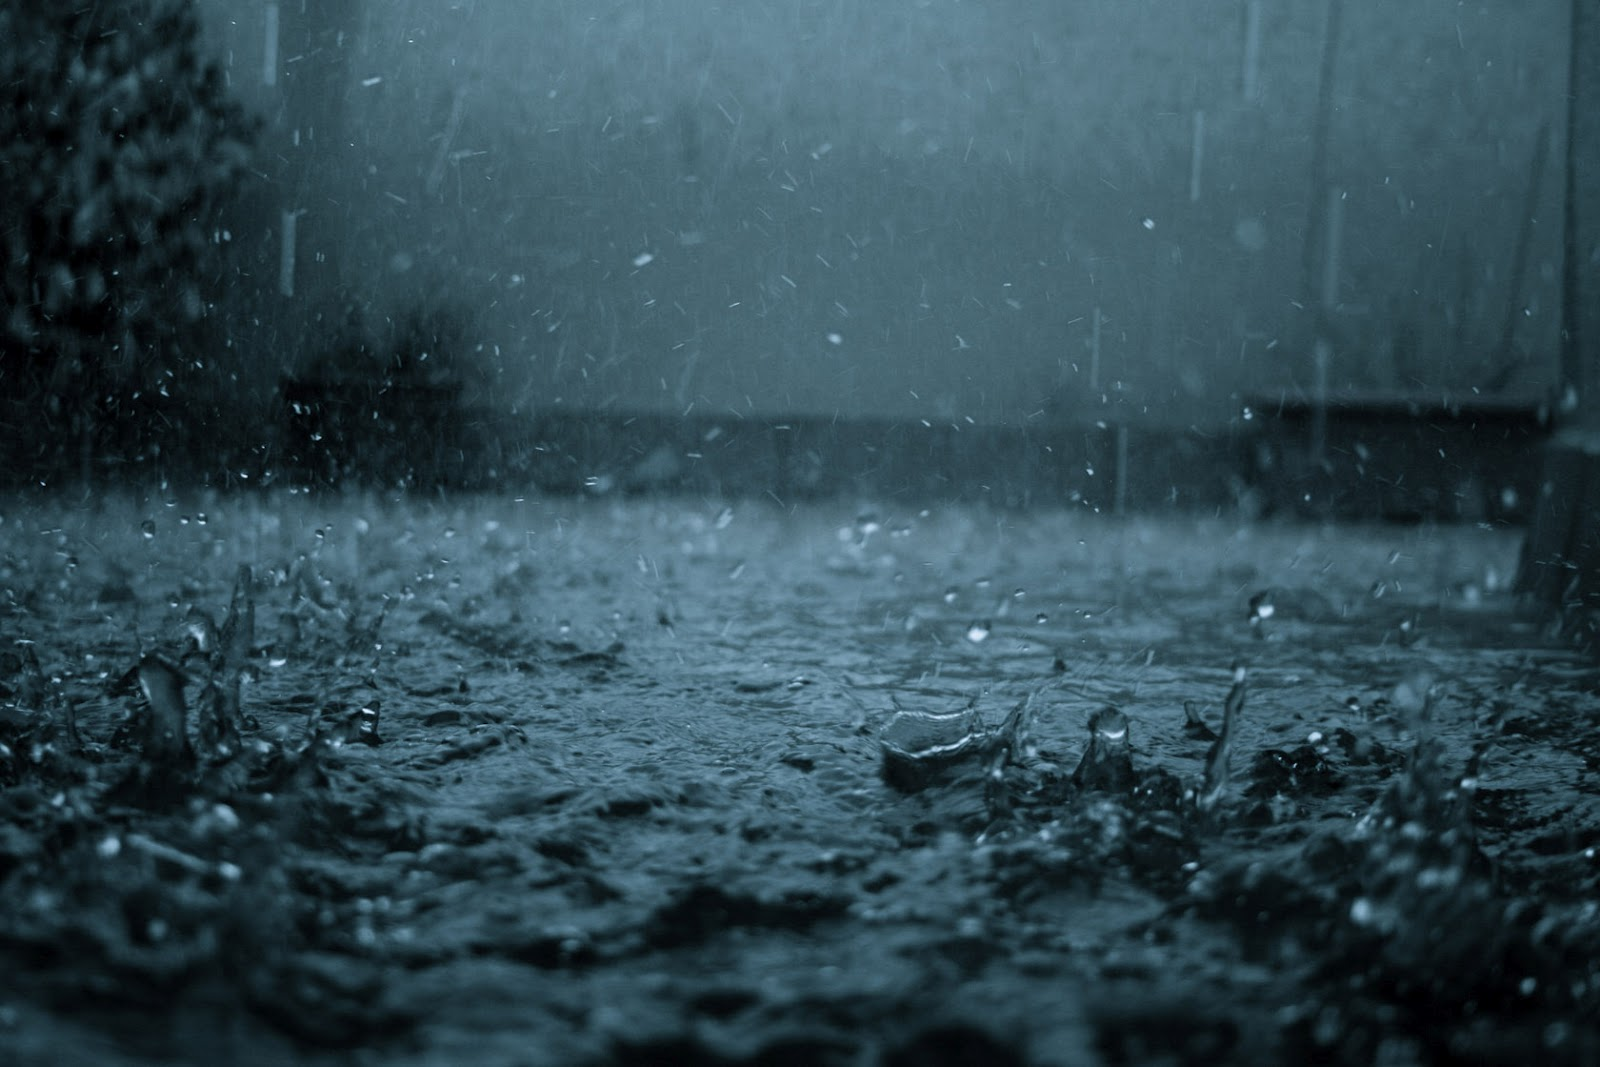 rain pictures | alone in rain pictures | hd love wallpapers | hd rain